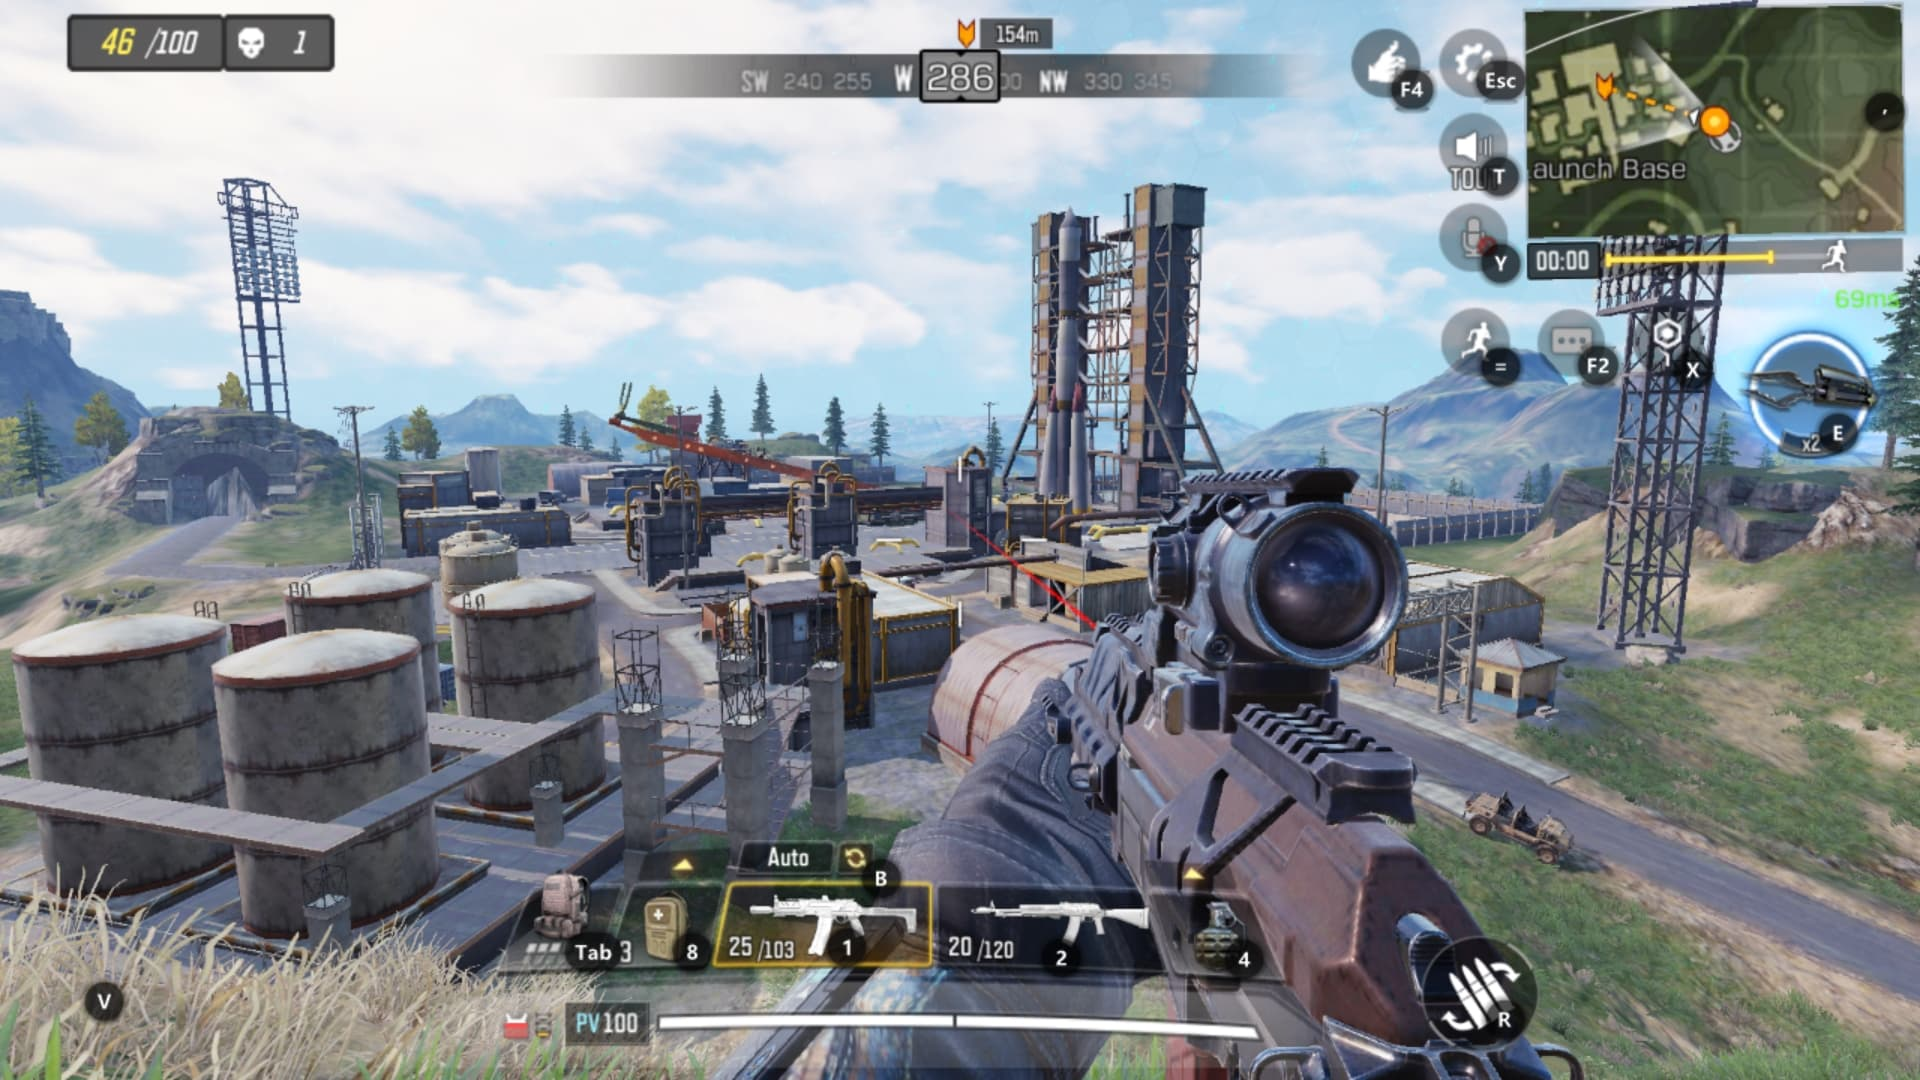 launch-base-ville-call-of-duty-mobile-carte-saison-1-isolated